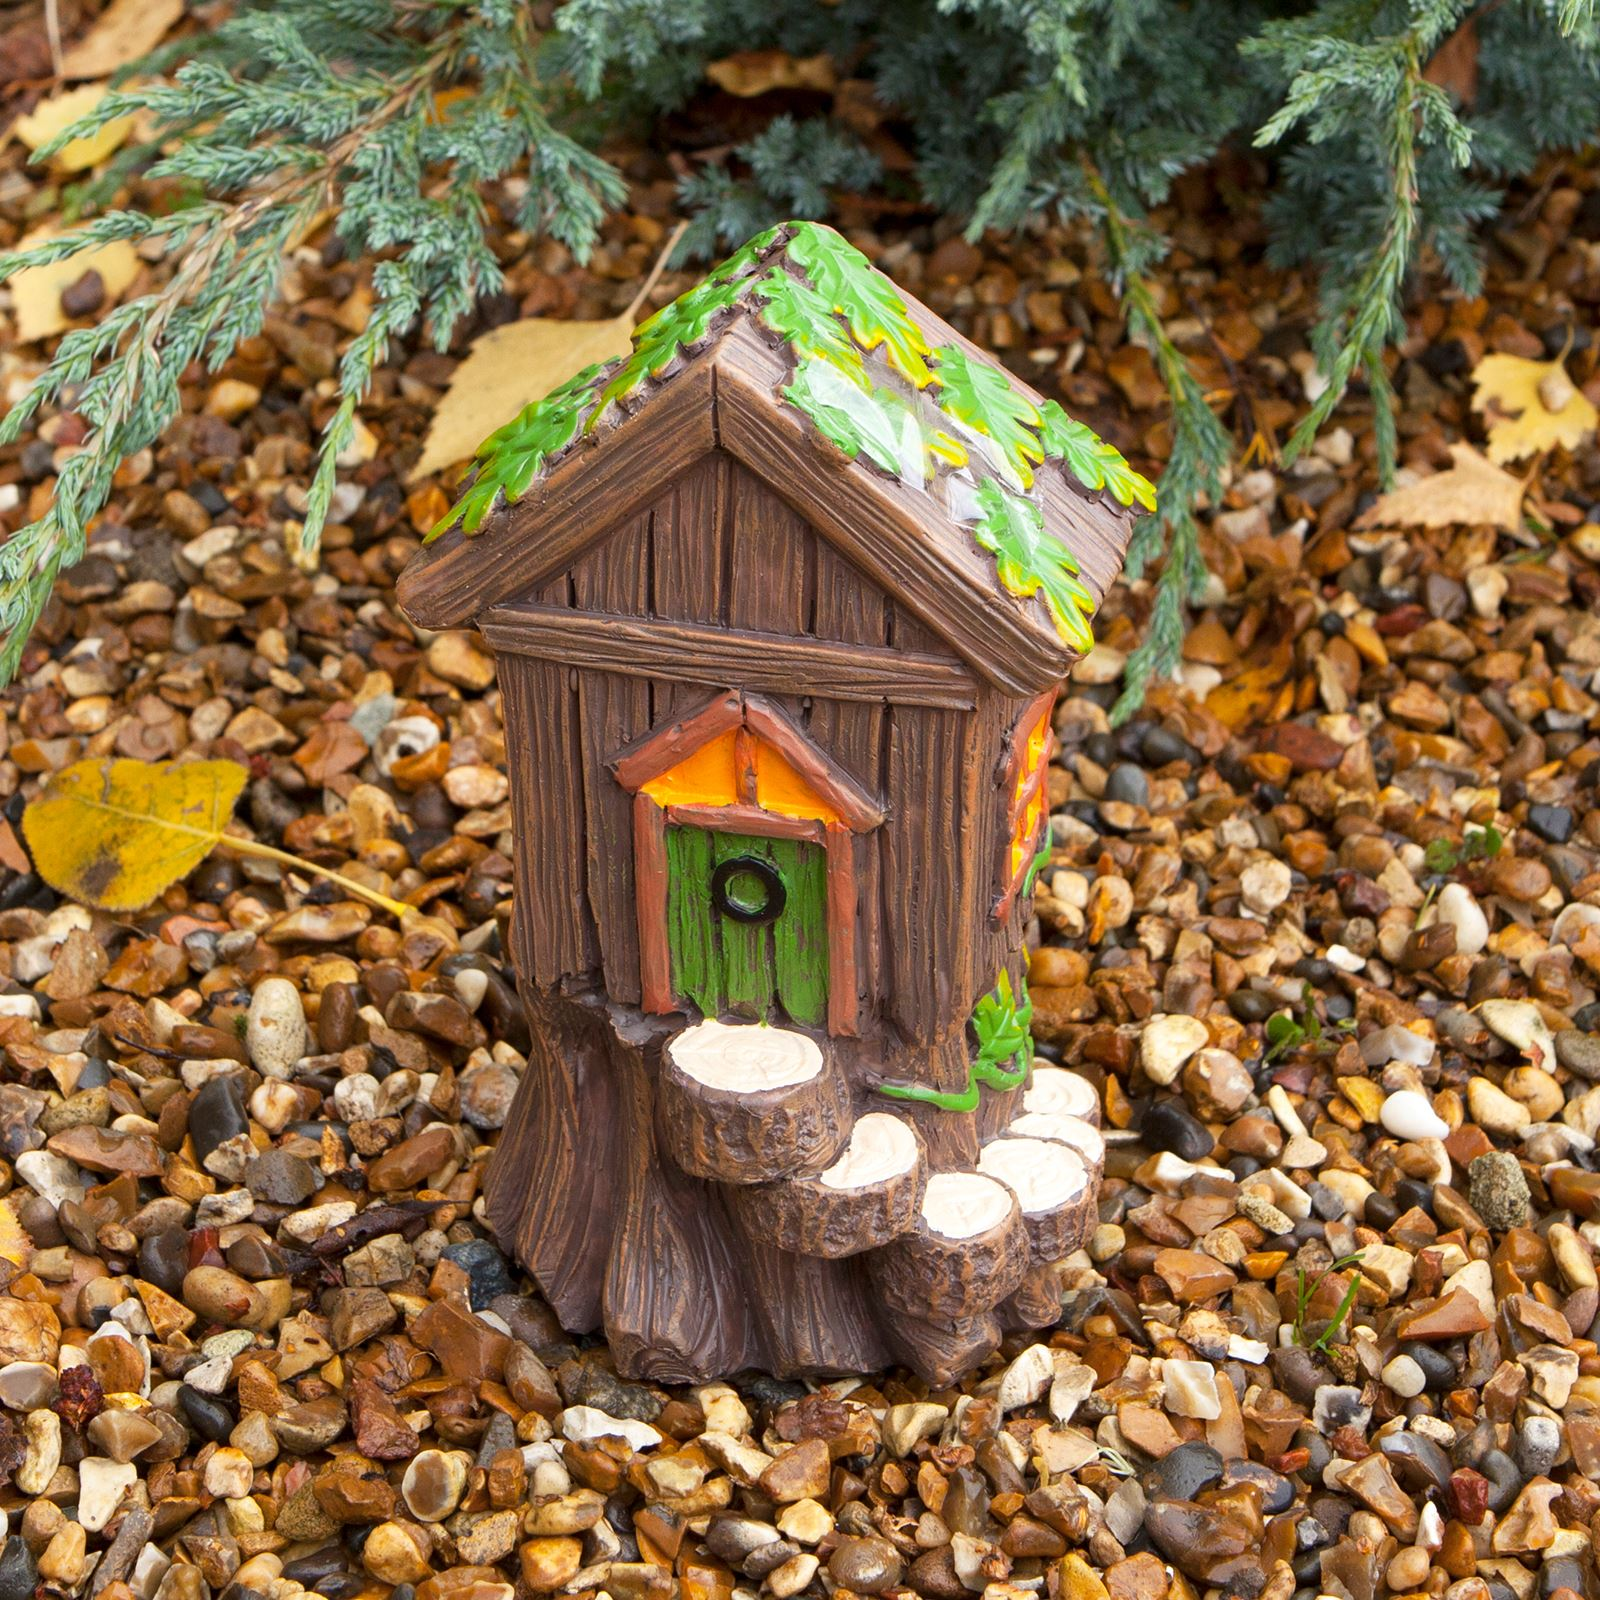 Miniature-Fairy-Enchanted-Garden-Home-Forest-Magical-Secret-Woodland-Fairies thumbnail 74